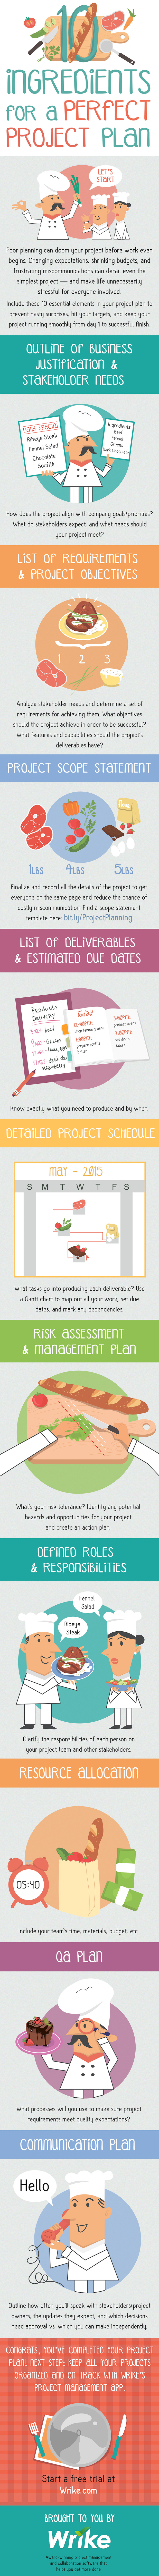 10 Essential Elements for the Perfect Project Plan - by Wrike project management tools